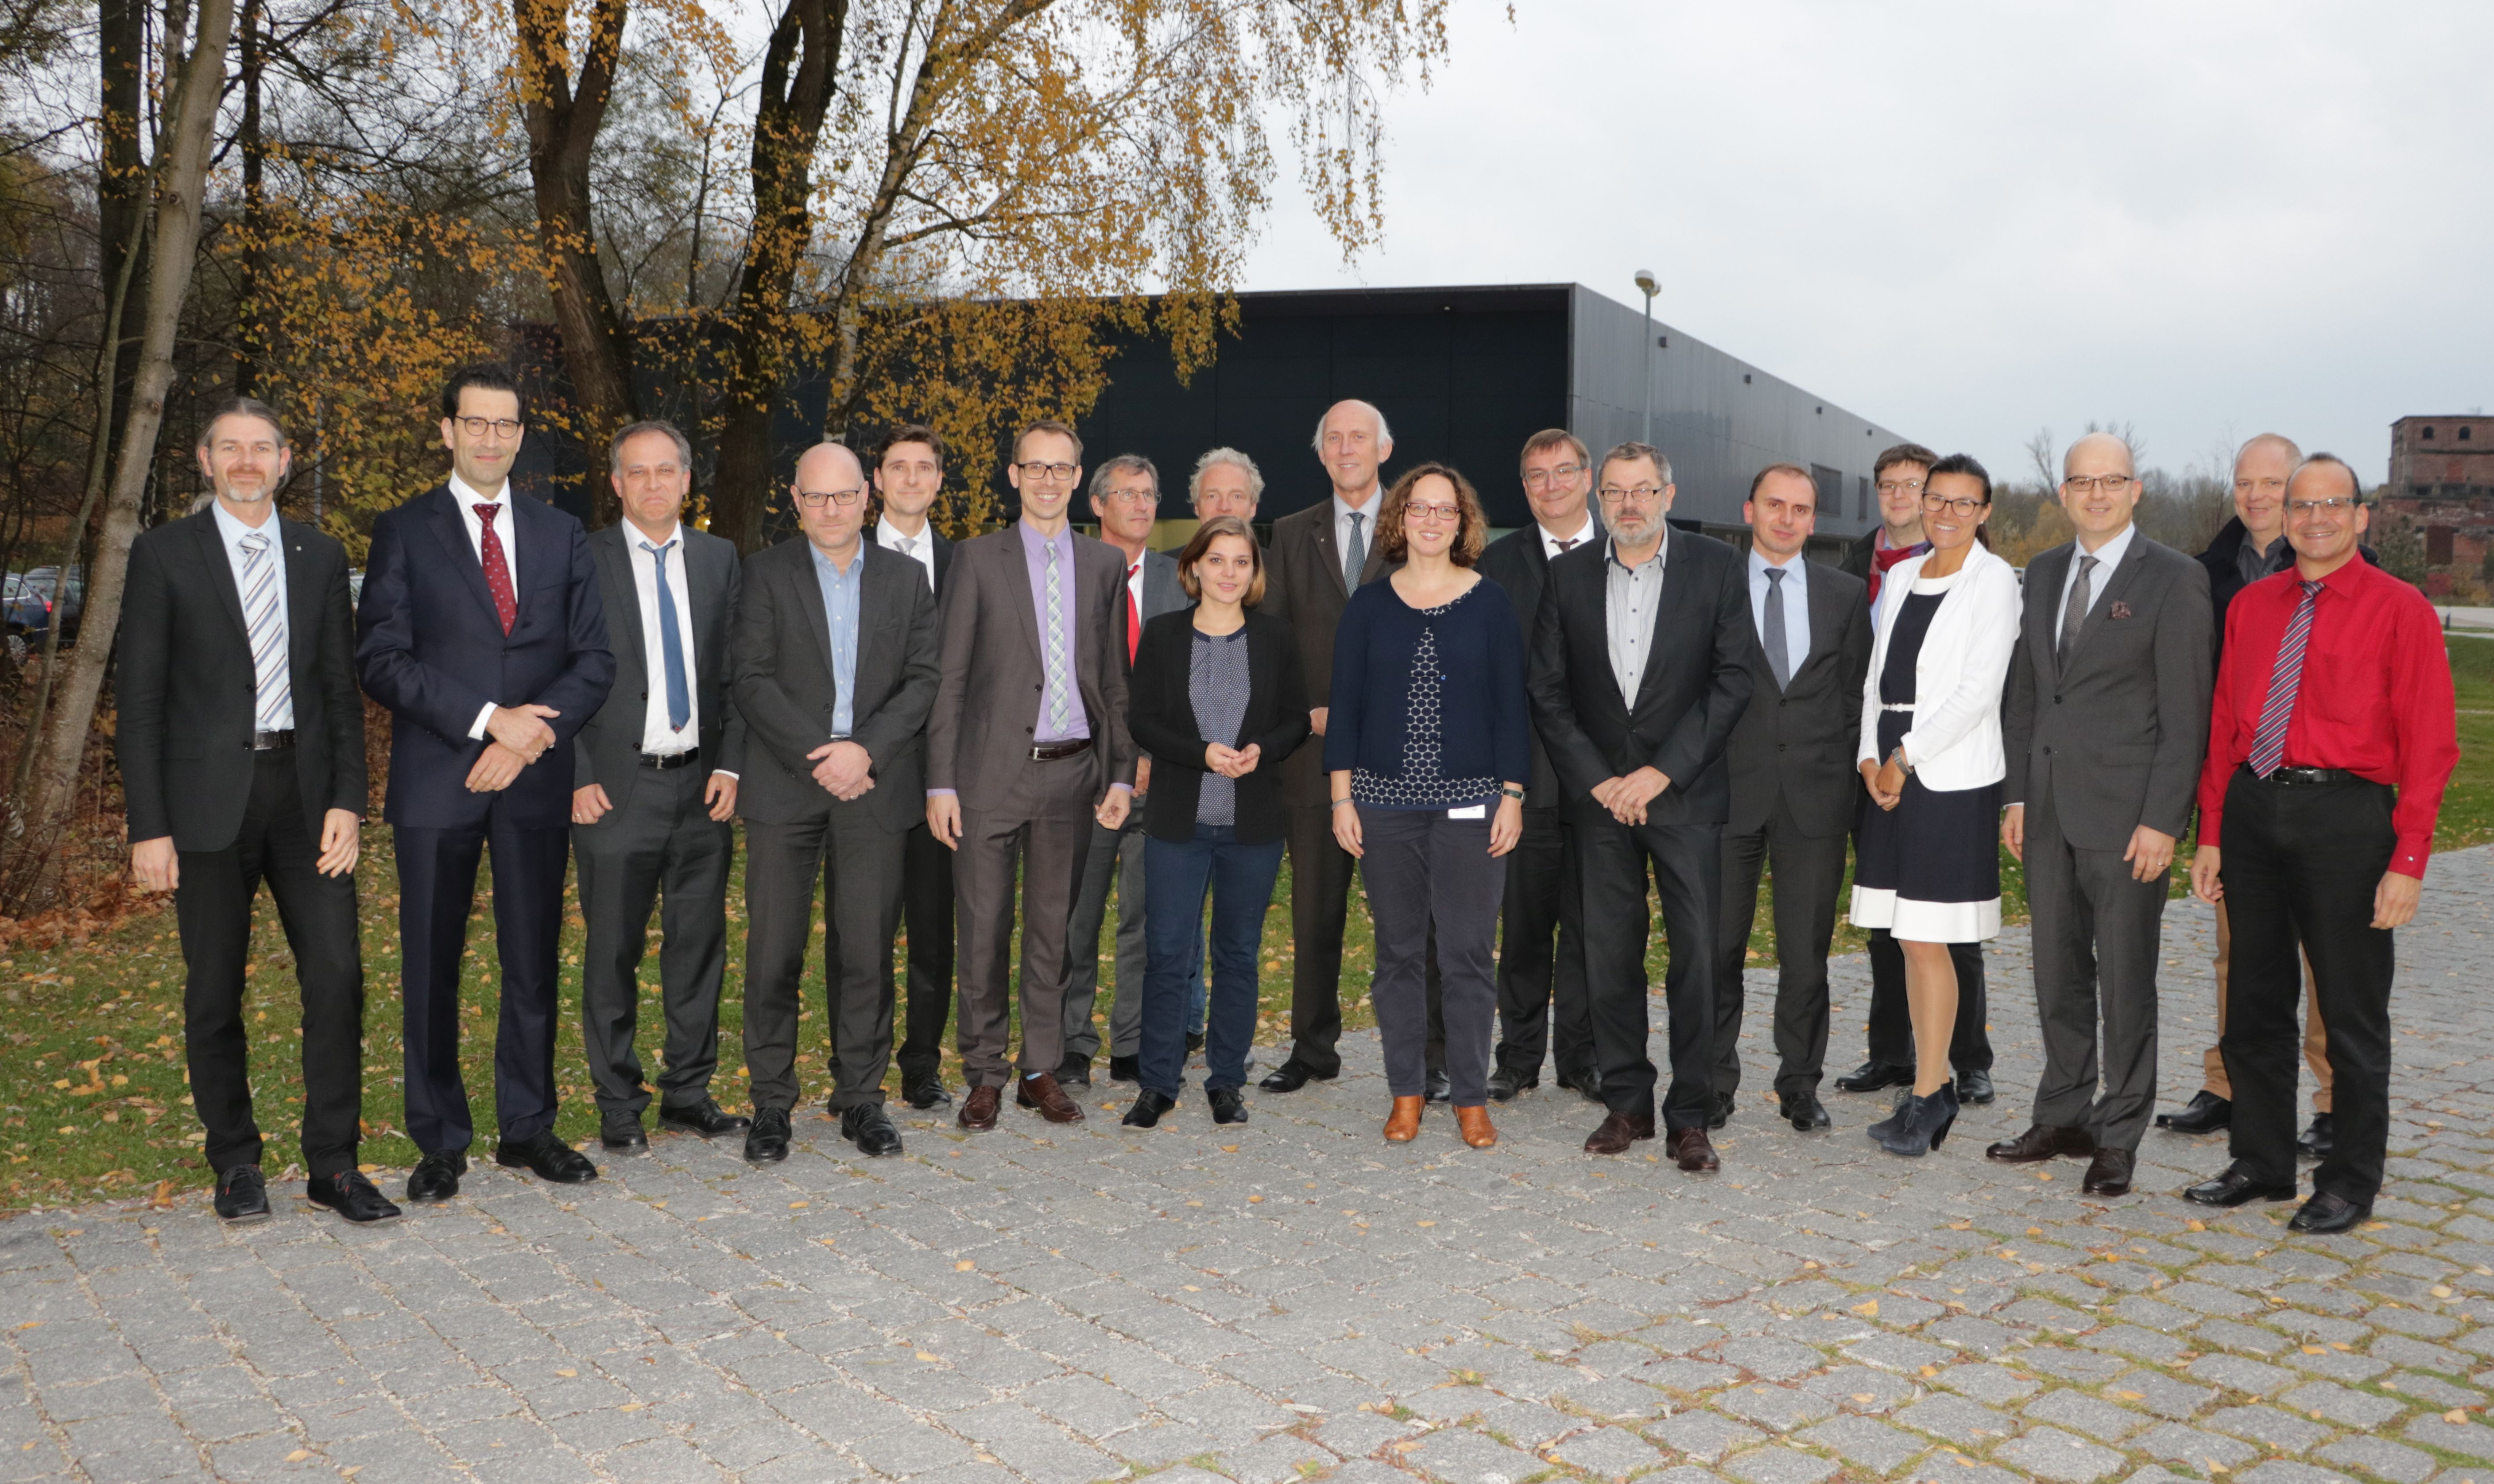 Participants of the inaugural meeting of the Scientific Advisory Board at THI on 7 November, 2017